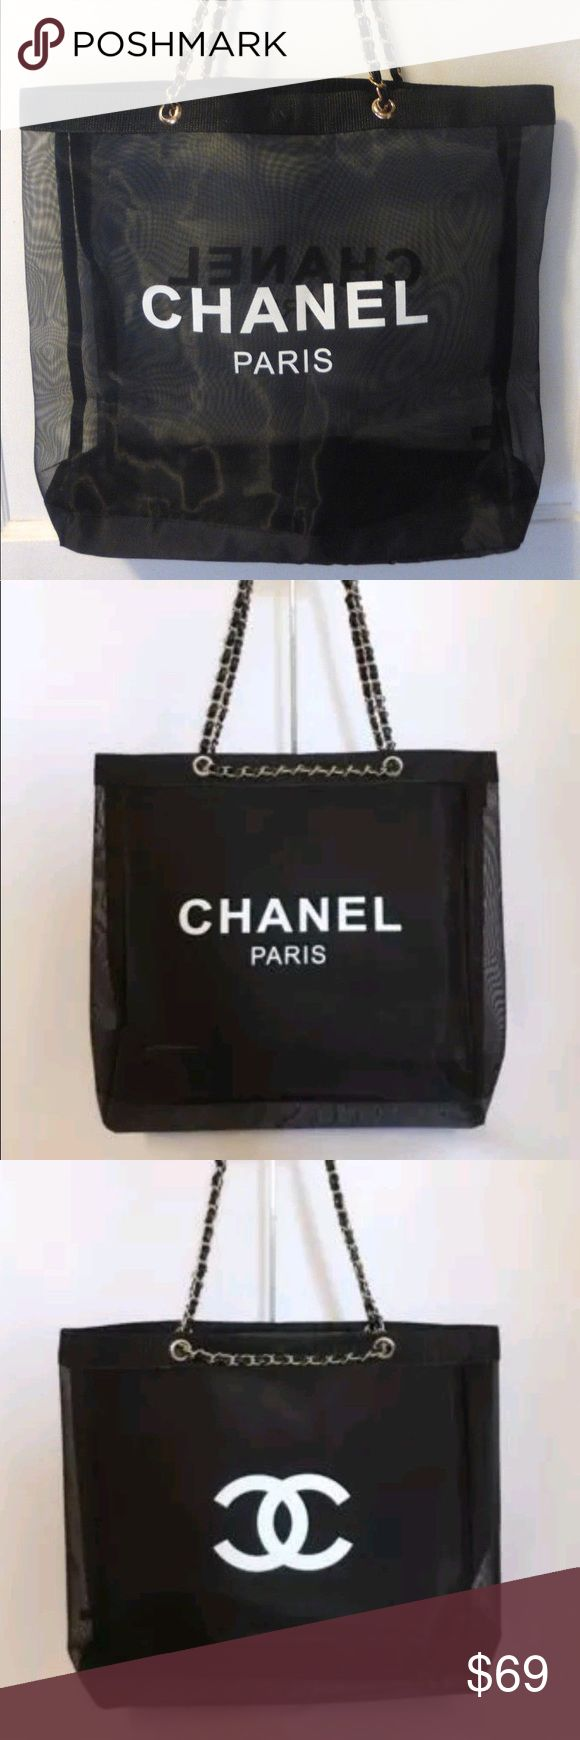 "Authentic Chanel mesh tote bag vip gift bag Authentic Chanel VIP gift bag mesh tote bag shoulder bag brand new. Gold chain . Size 15x15"" . Chain drop 11"". This is a VIP promotional gift form a Chanel store in Korea. With original packaging bag. 100 % Authentic. CHANEL Bags Shoulder Bags"